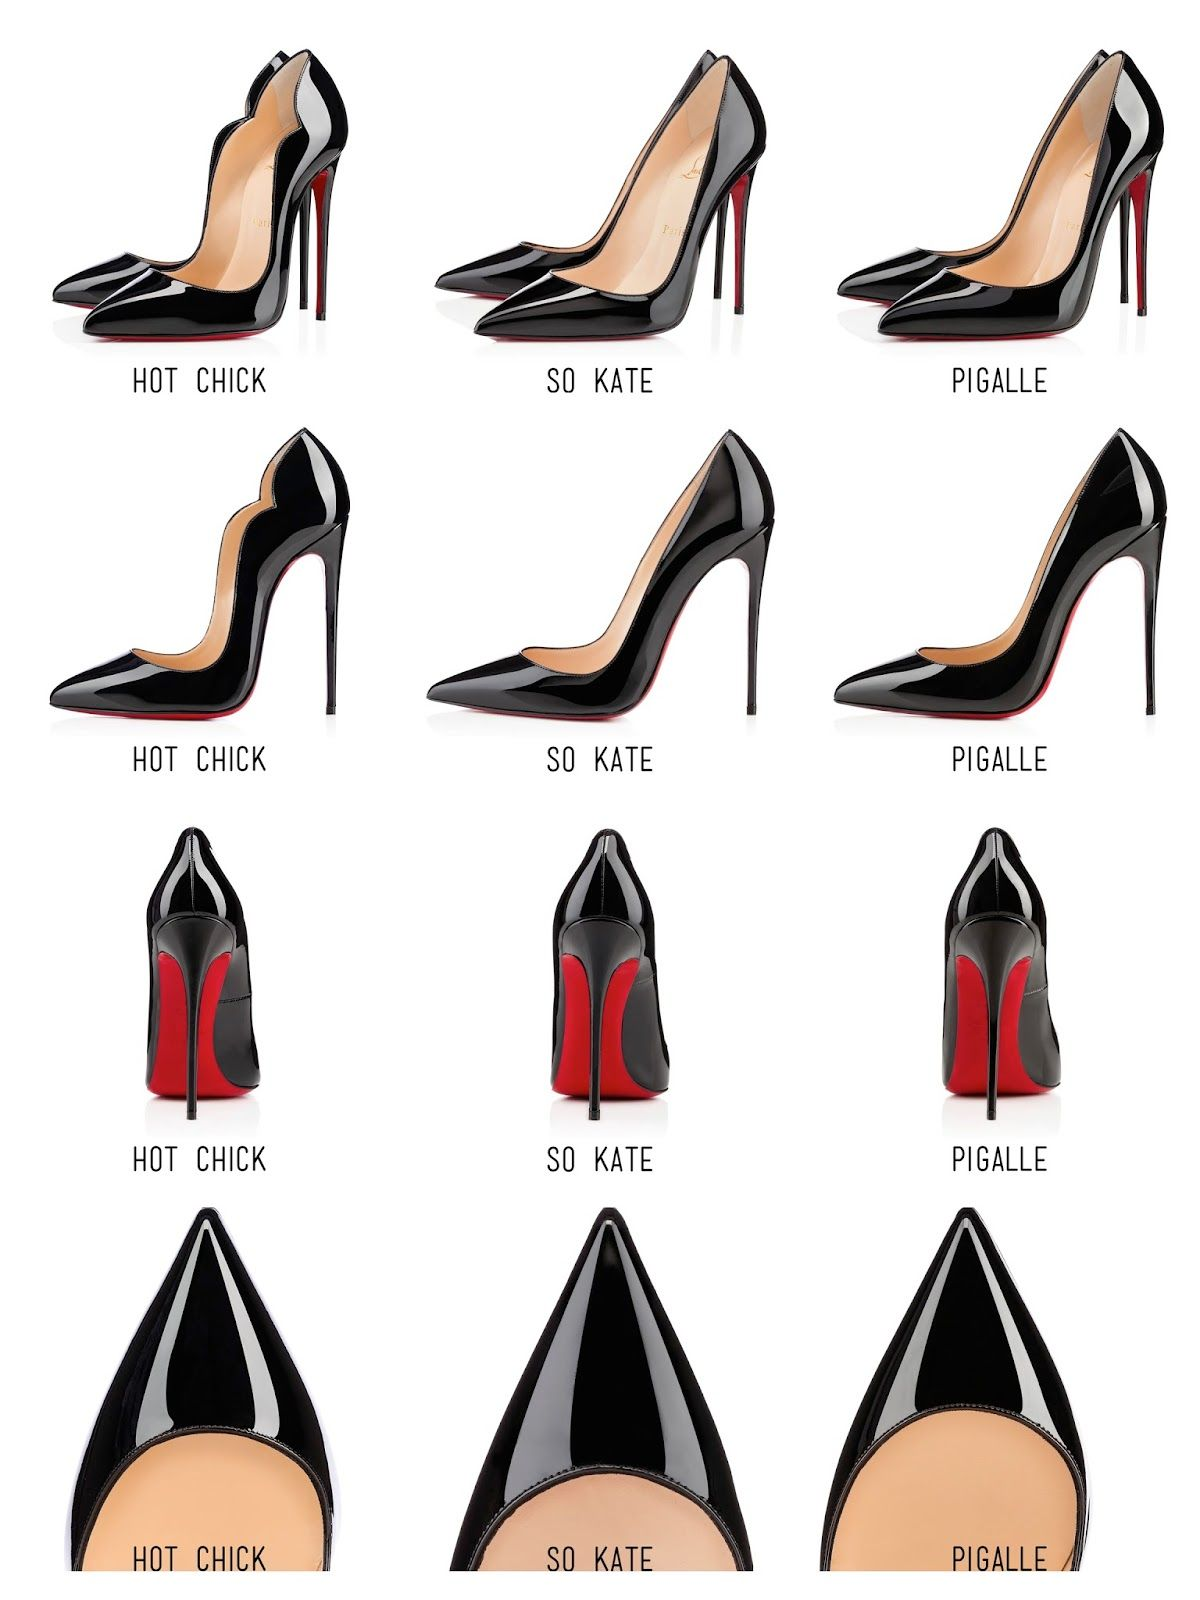 2a633d80a Cars Leben | Autos Fashion Lifestyle Blog: Christian Louboutin Hot Chick  vs. So Kate vs. Pigalle Mehr